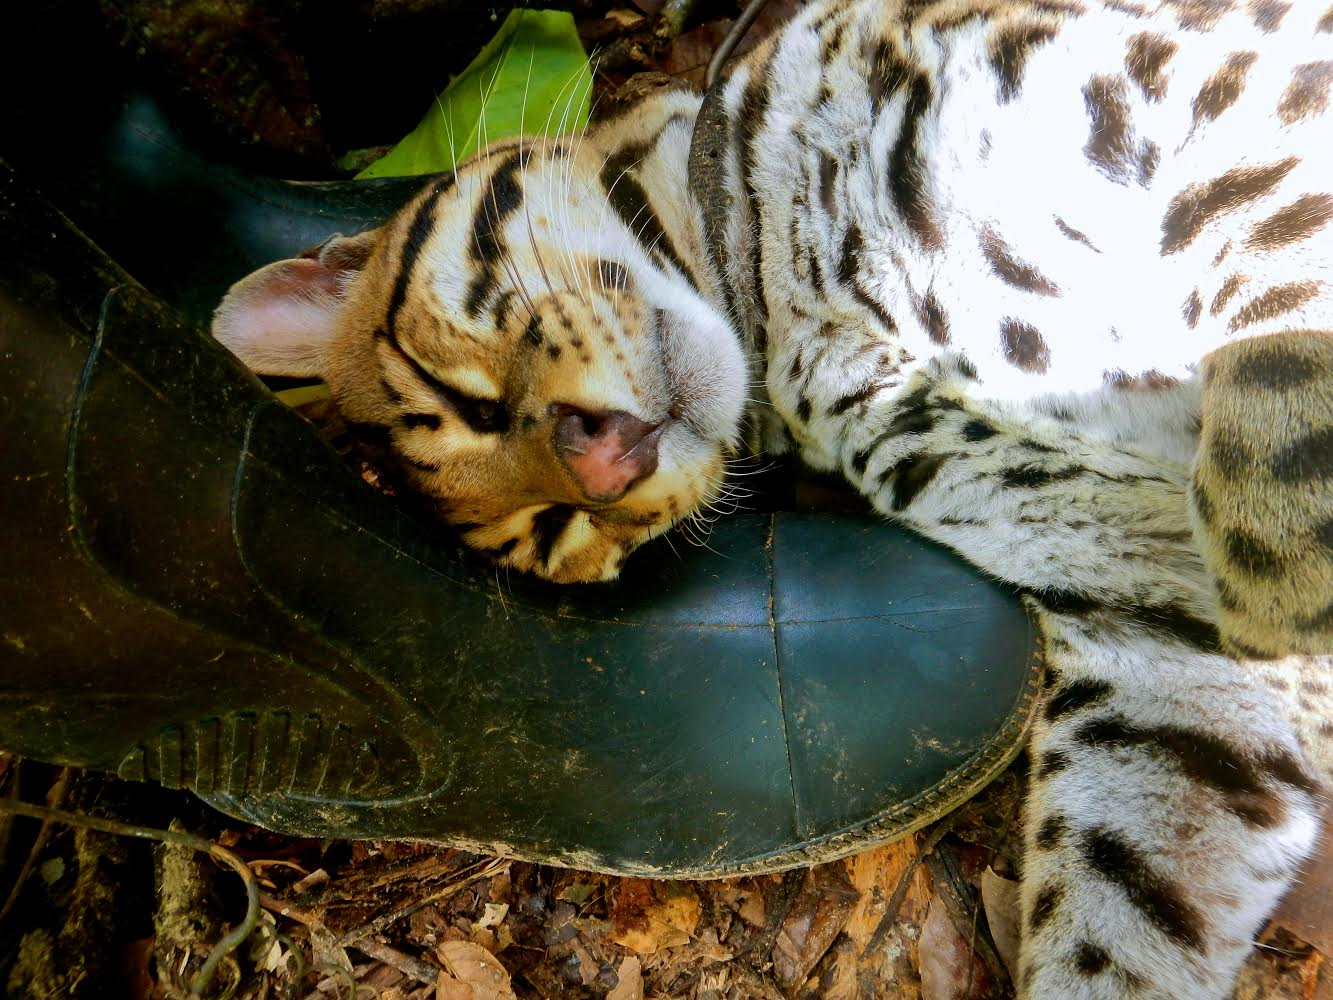 Tigre the Ocelot cuddling with Chelsea's boots